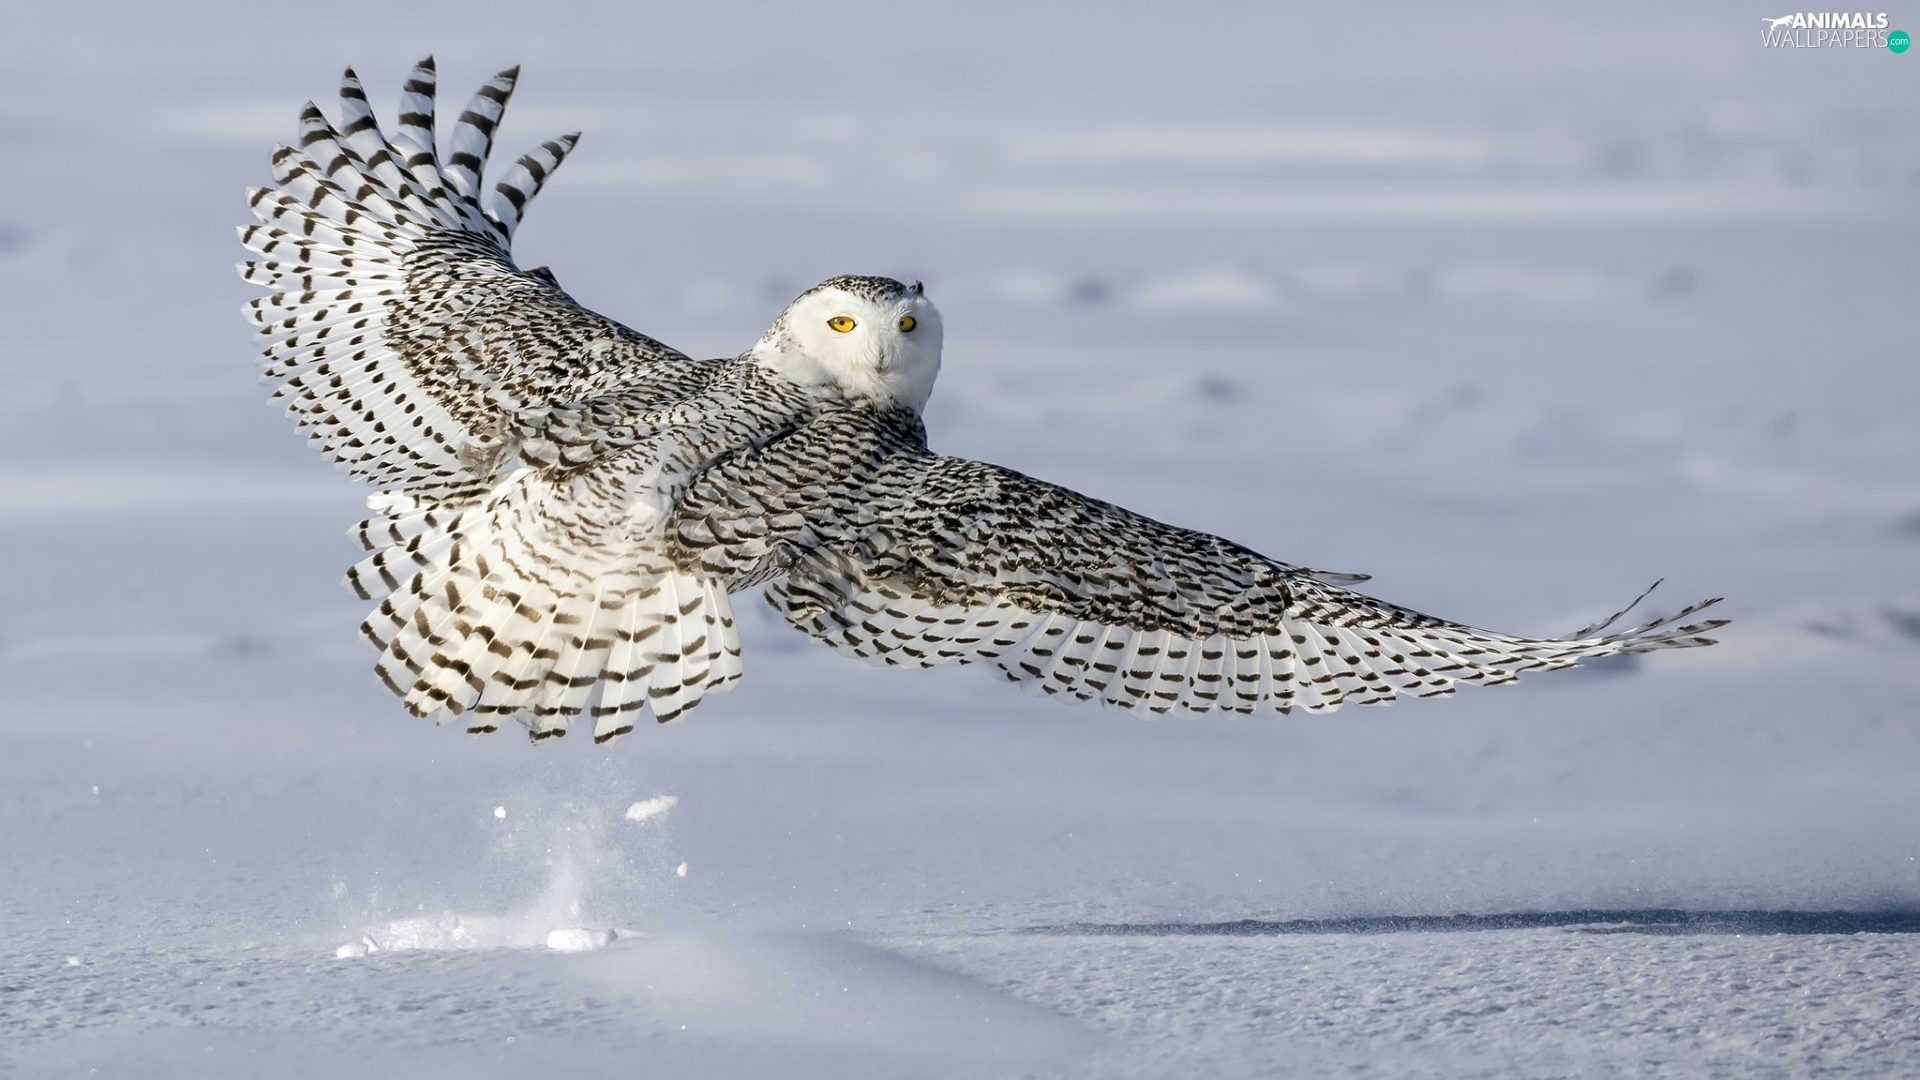 wings, snow, Snowy Owl, spread, Bird